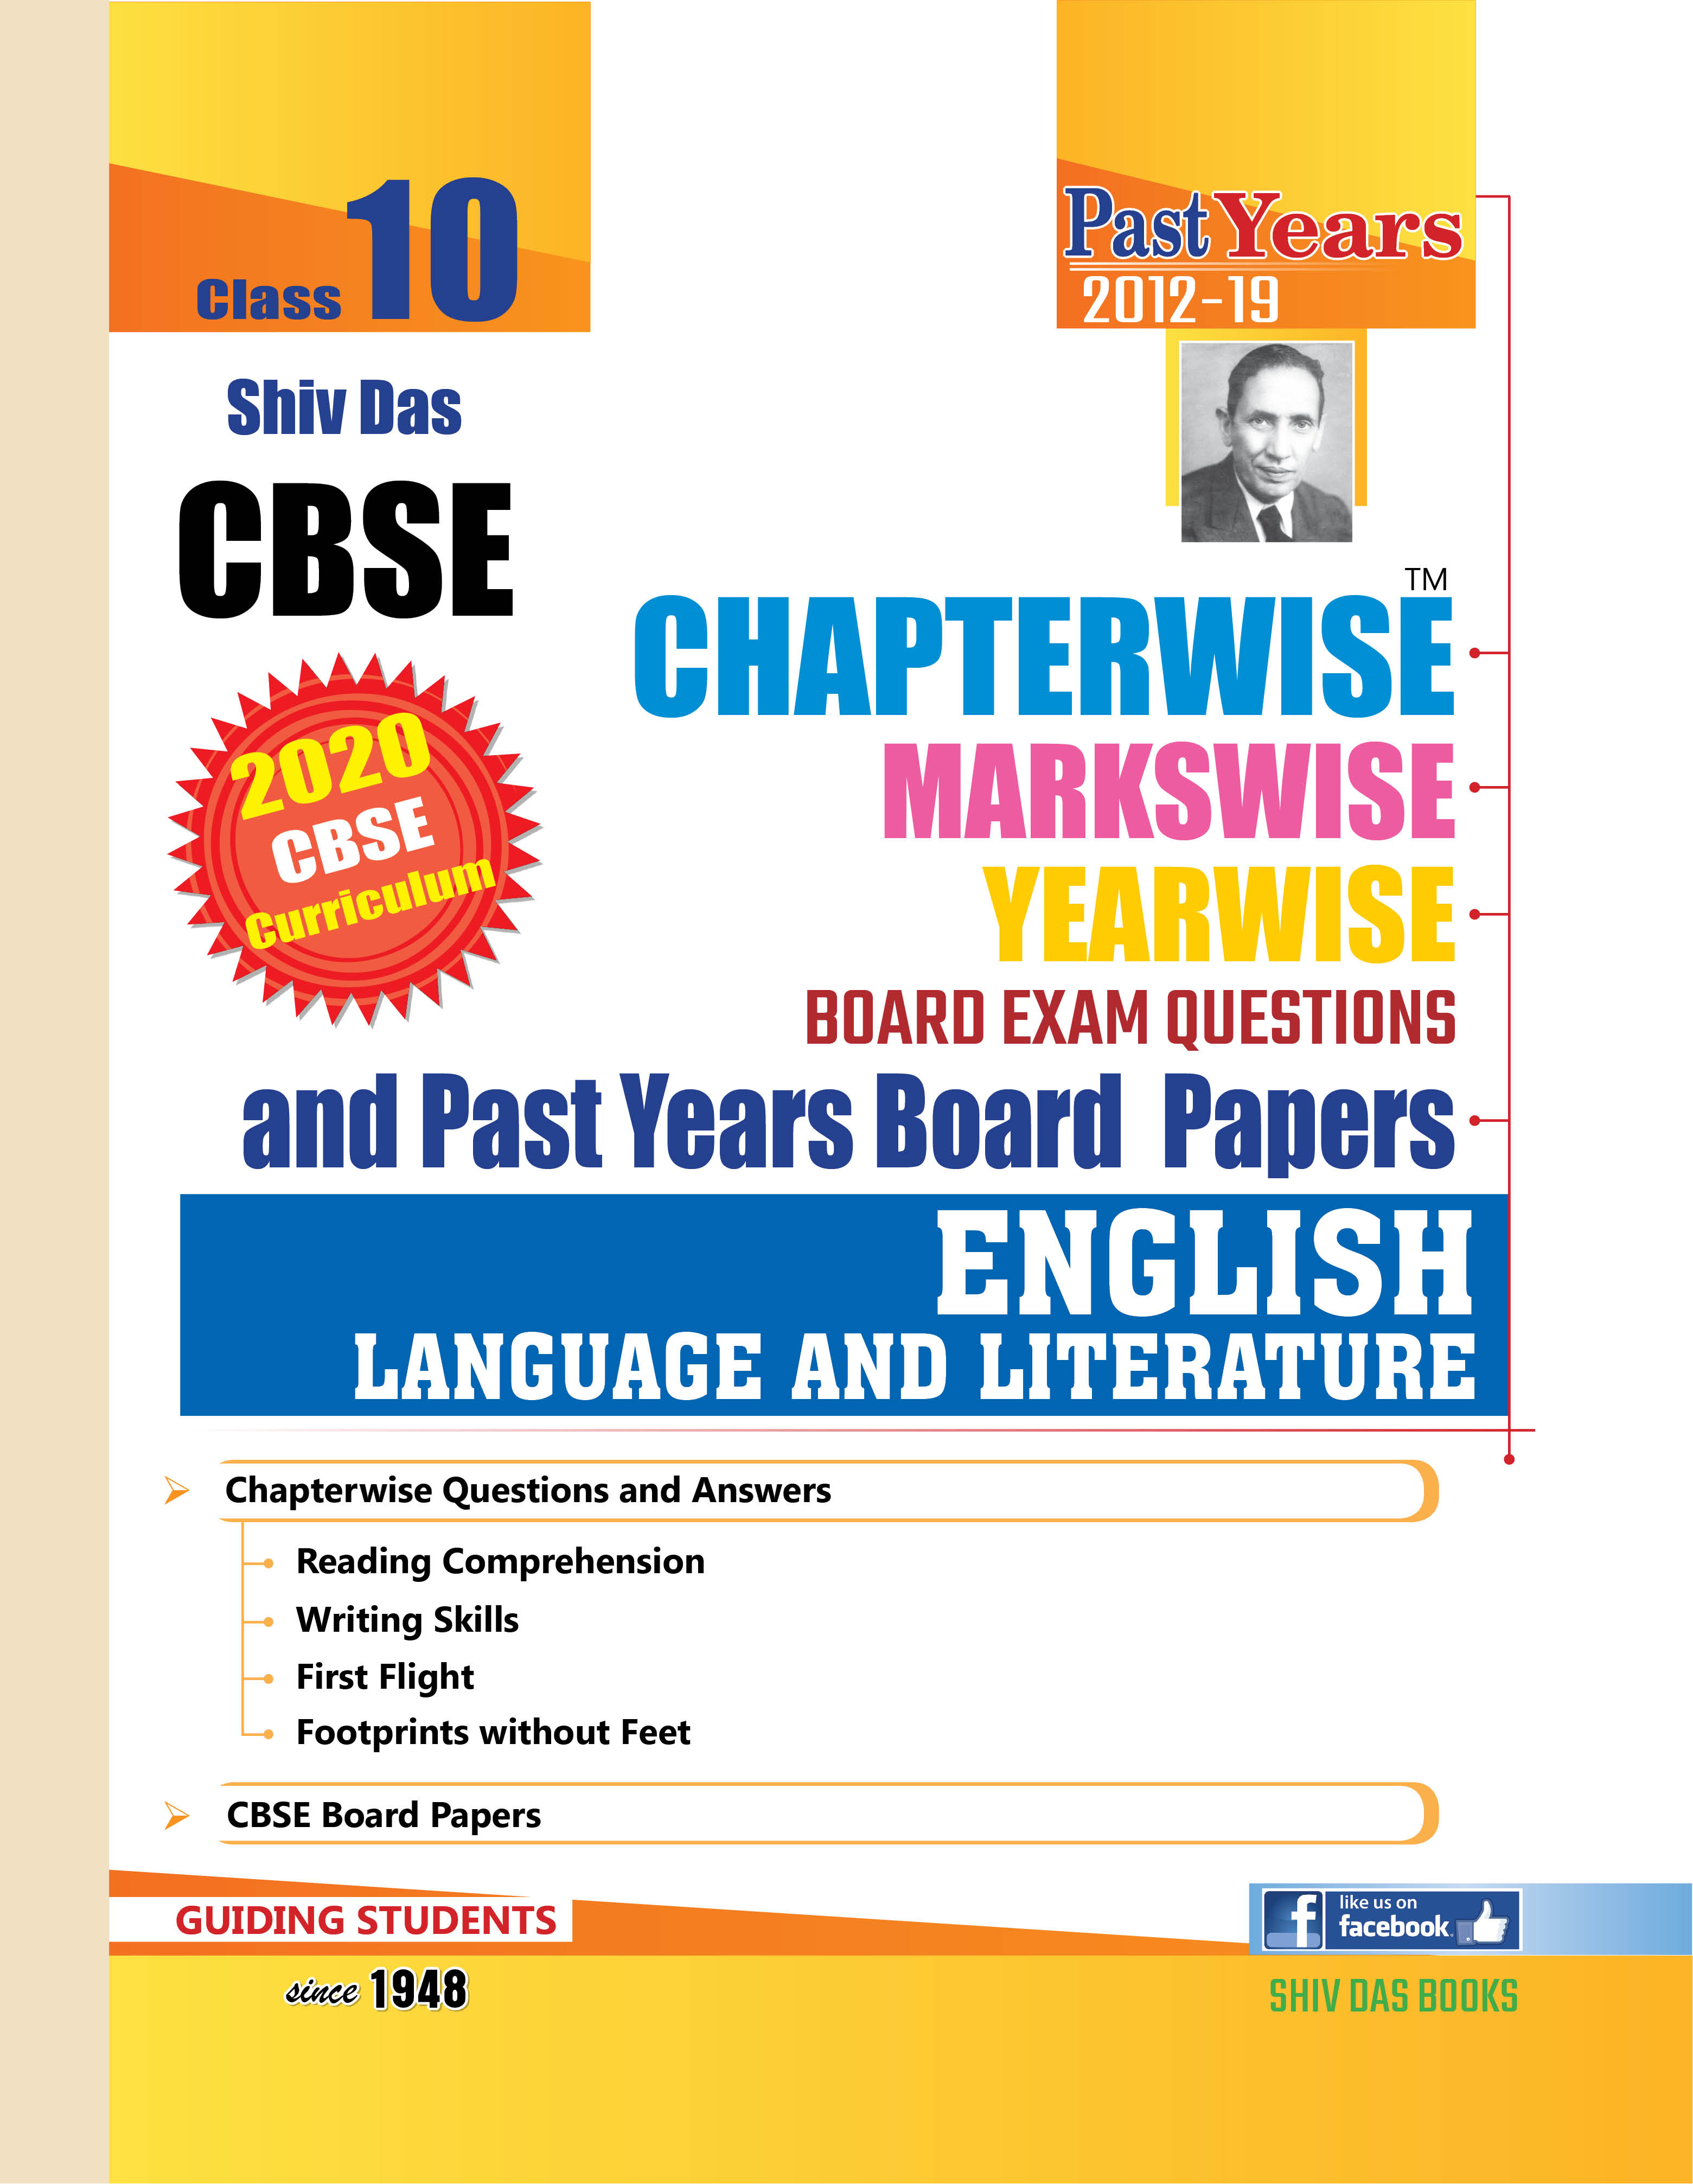 CBSE Chapterwise Markswise Yearwise Board Exam Questions Bank For Class 10 English Language & Literature (2020 Board Exam Edition)